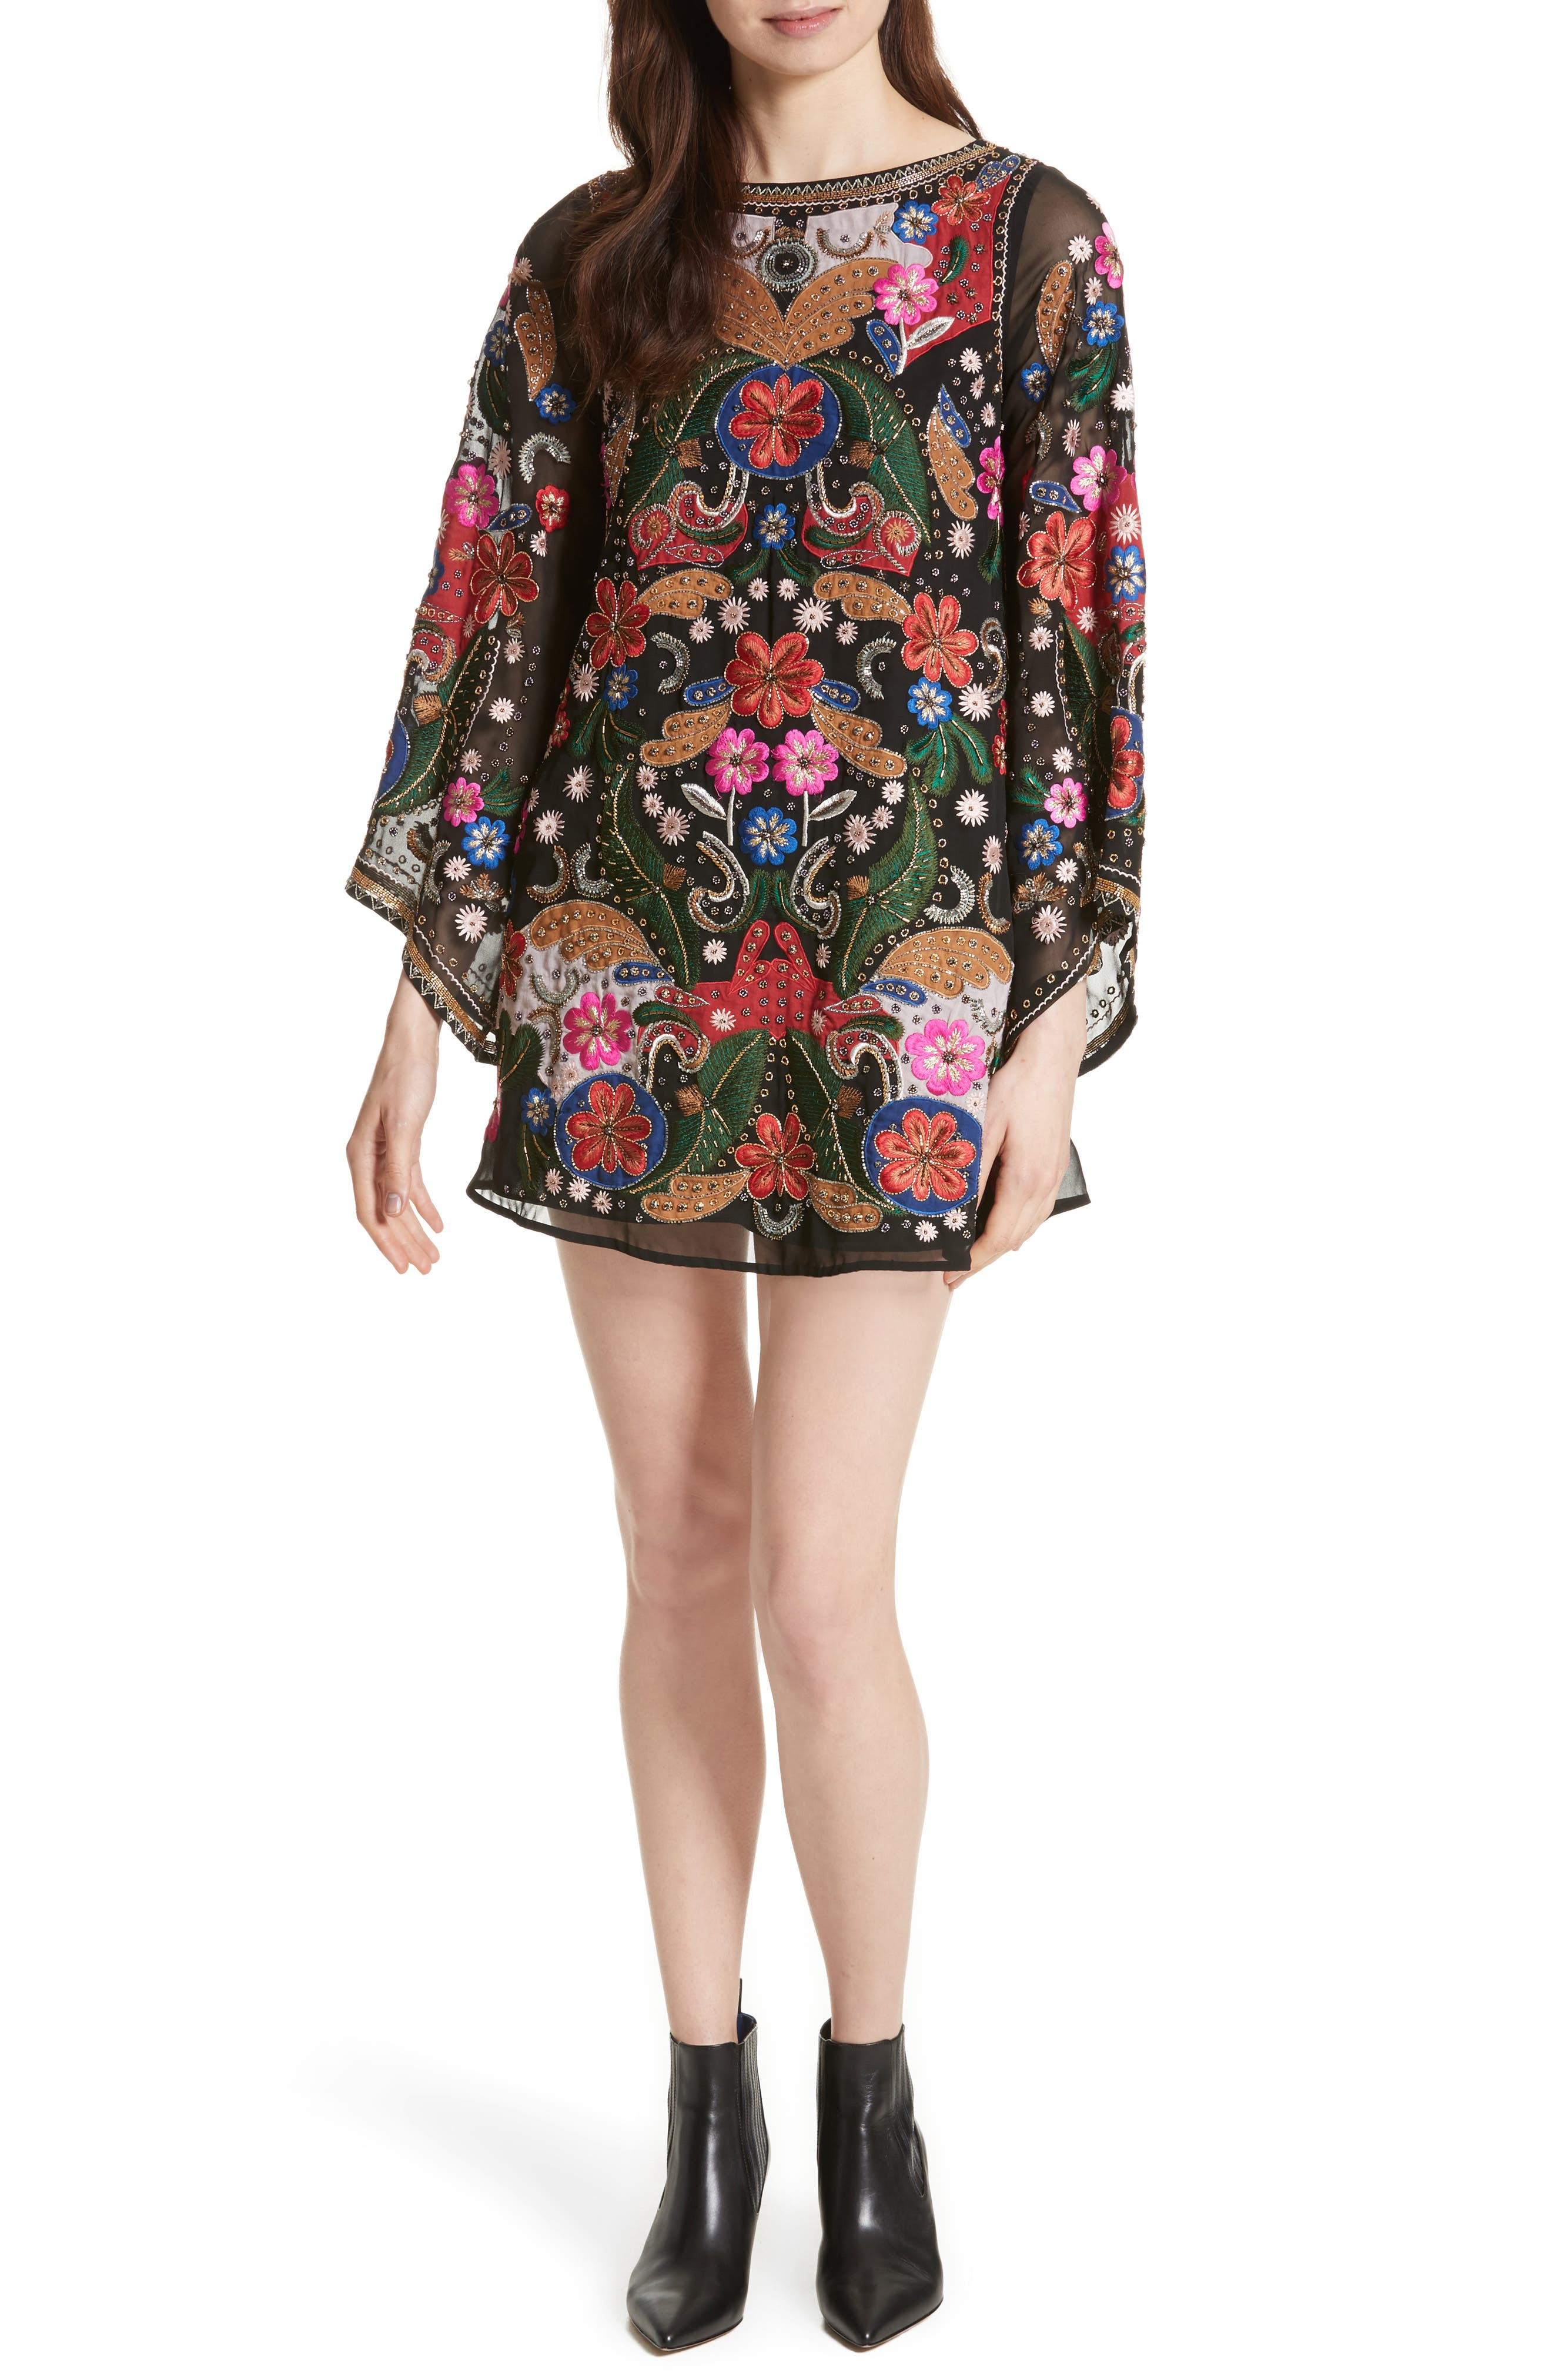 Eleonora Bell Sleeve Floral Embellished Dress,                         Main,                         color, Black/ Multi